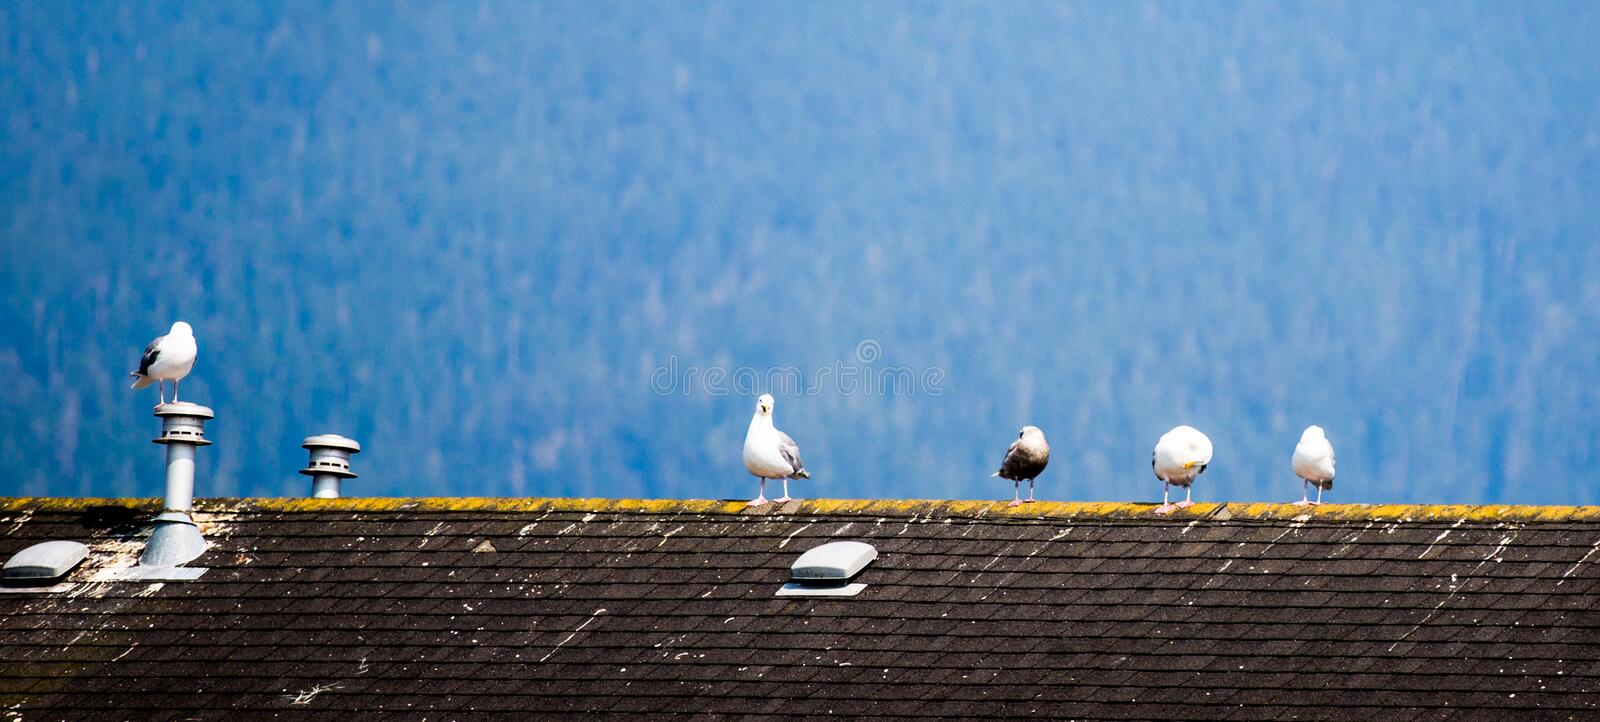 There are several dove standing on the roof. On the roof stood a few pigeons of various postures, leisurely and comfortable, misty distances, faintly visible royalty free stock photos